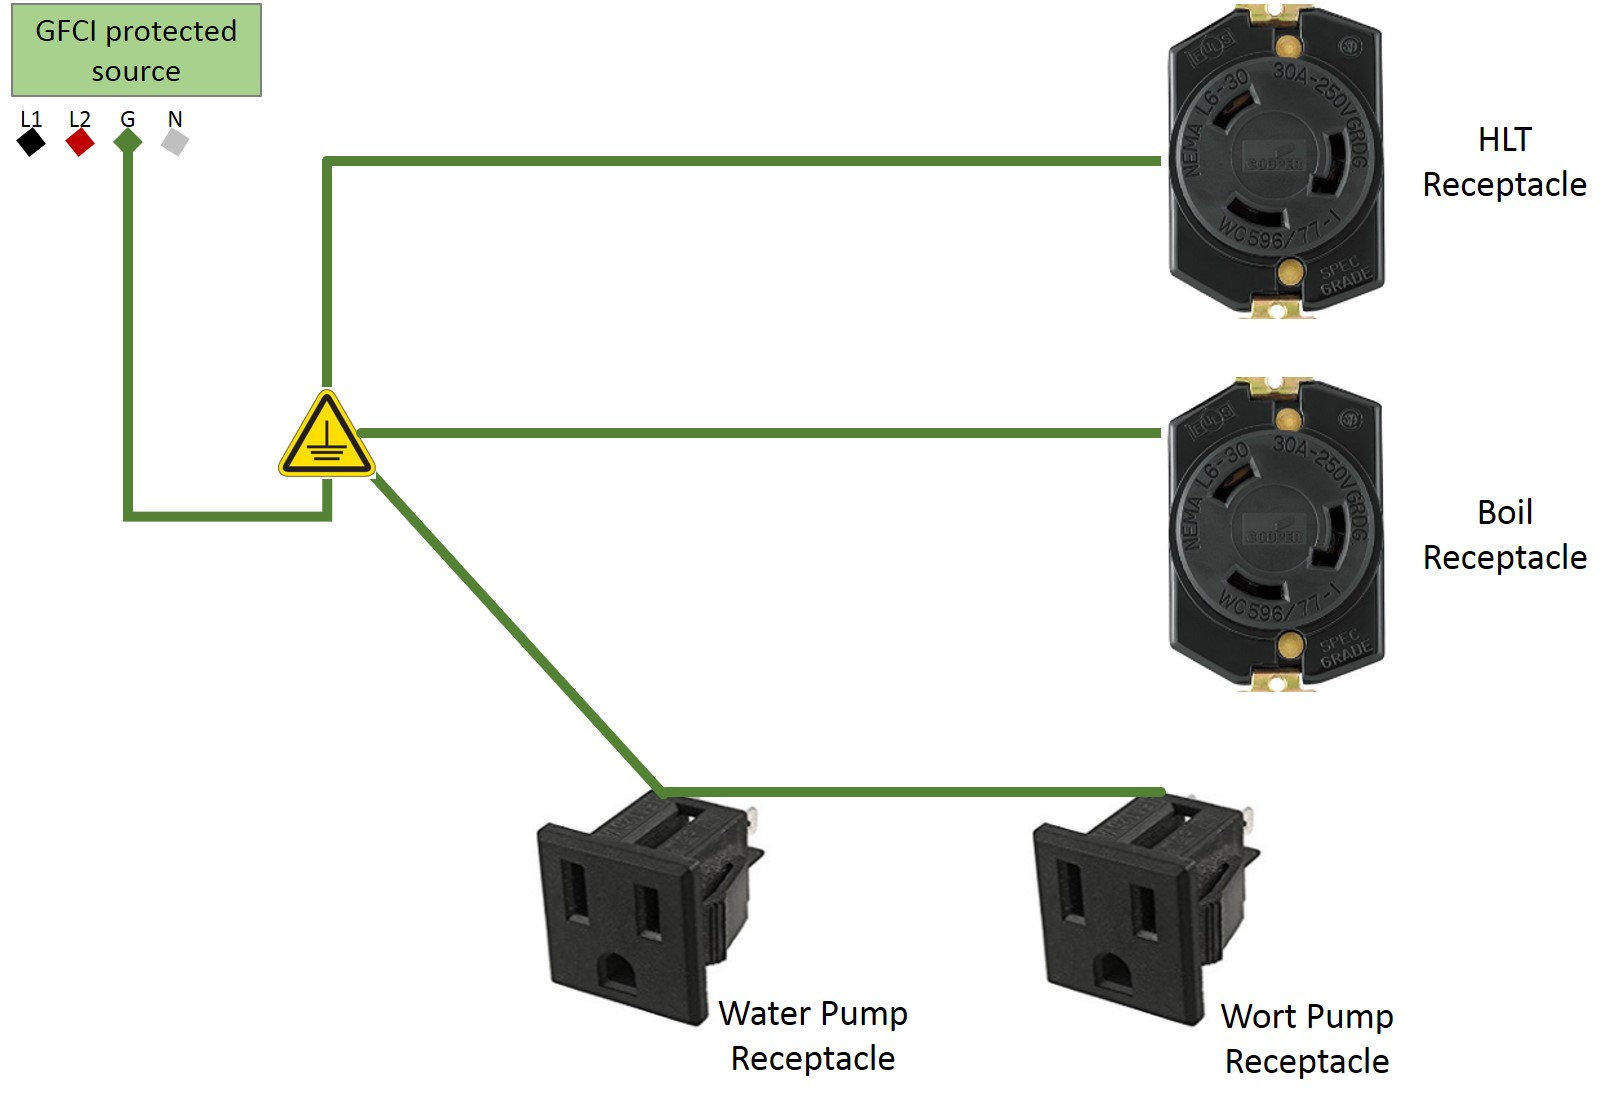 Auber Pid Wiring Diagram E Herms Brewery Build Forum Taming The Penguin We Use 10 Awg To Ground Receptacles And Enclosure I Did Not Door Separately As My Box Has Only One Post But It Wont Hurt